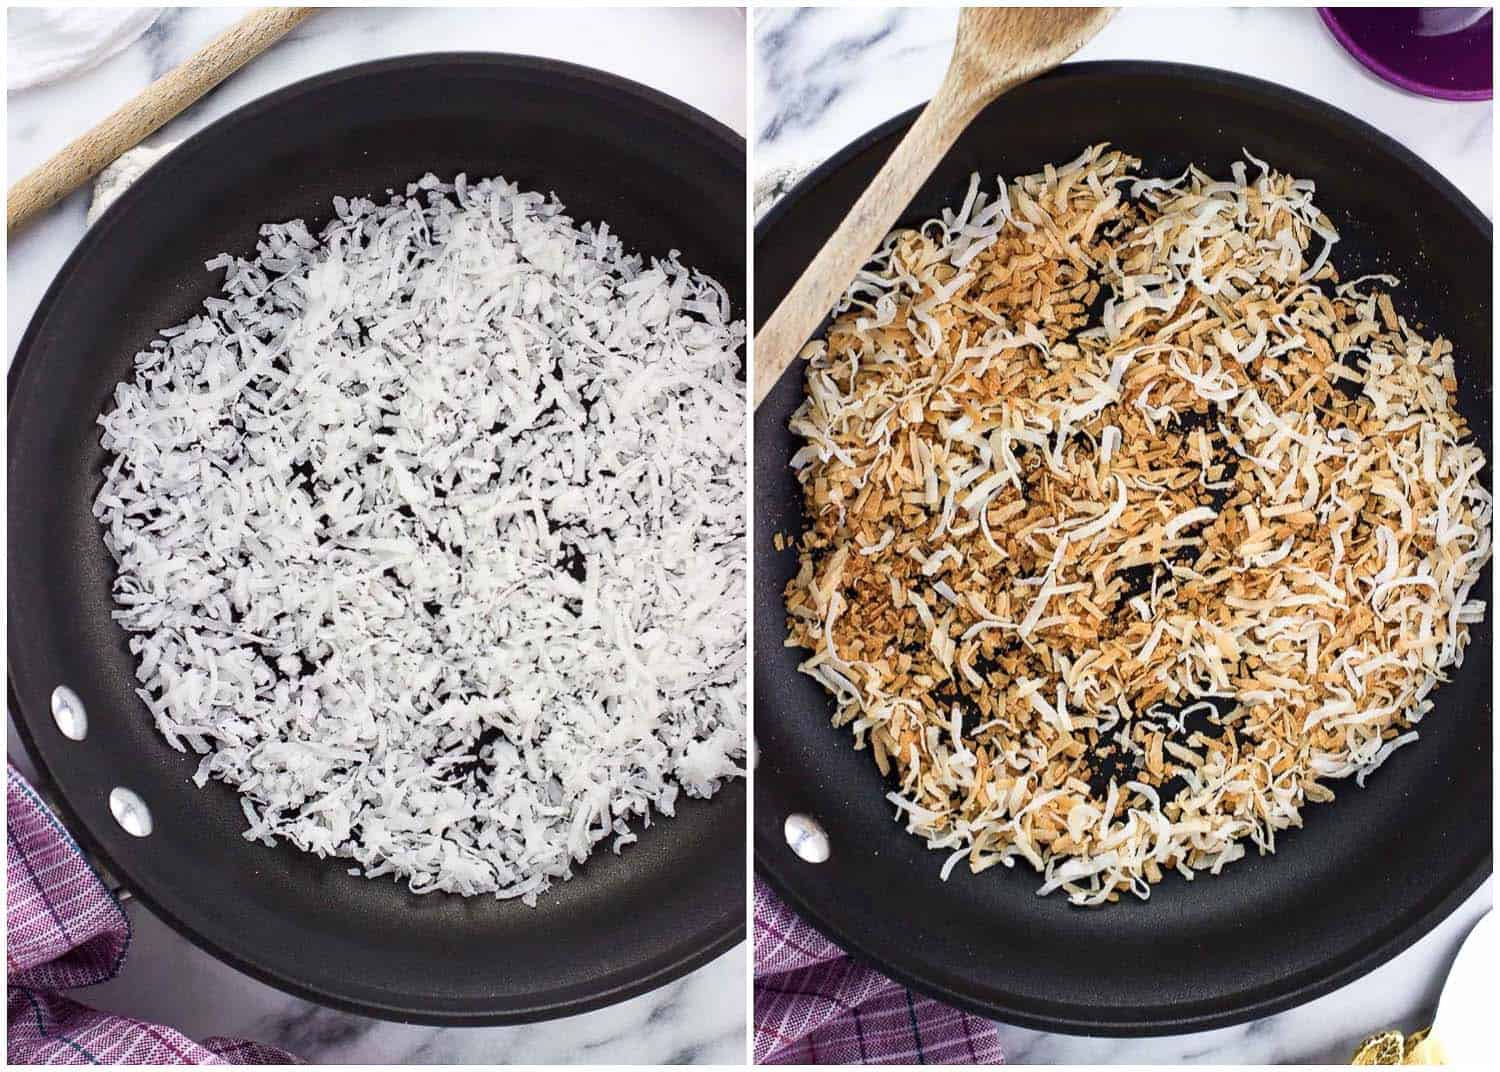 A side-by-side image of coconut flakes in a skillet next to a wooden spoon before toasting (left) and after (right)